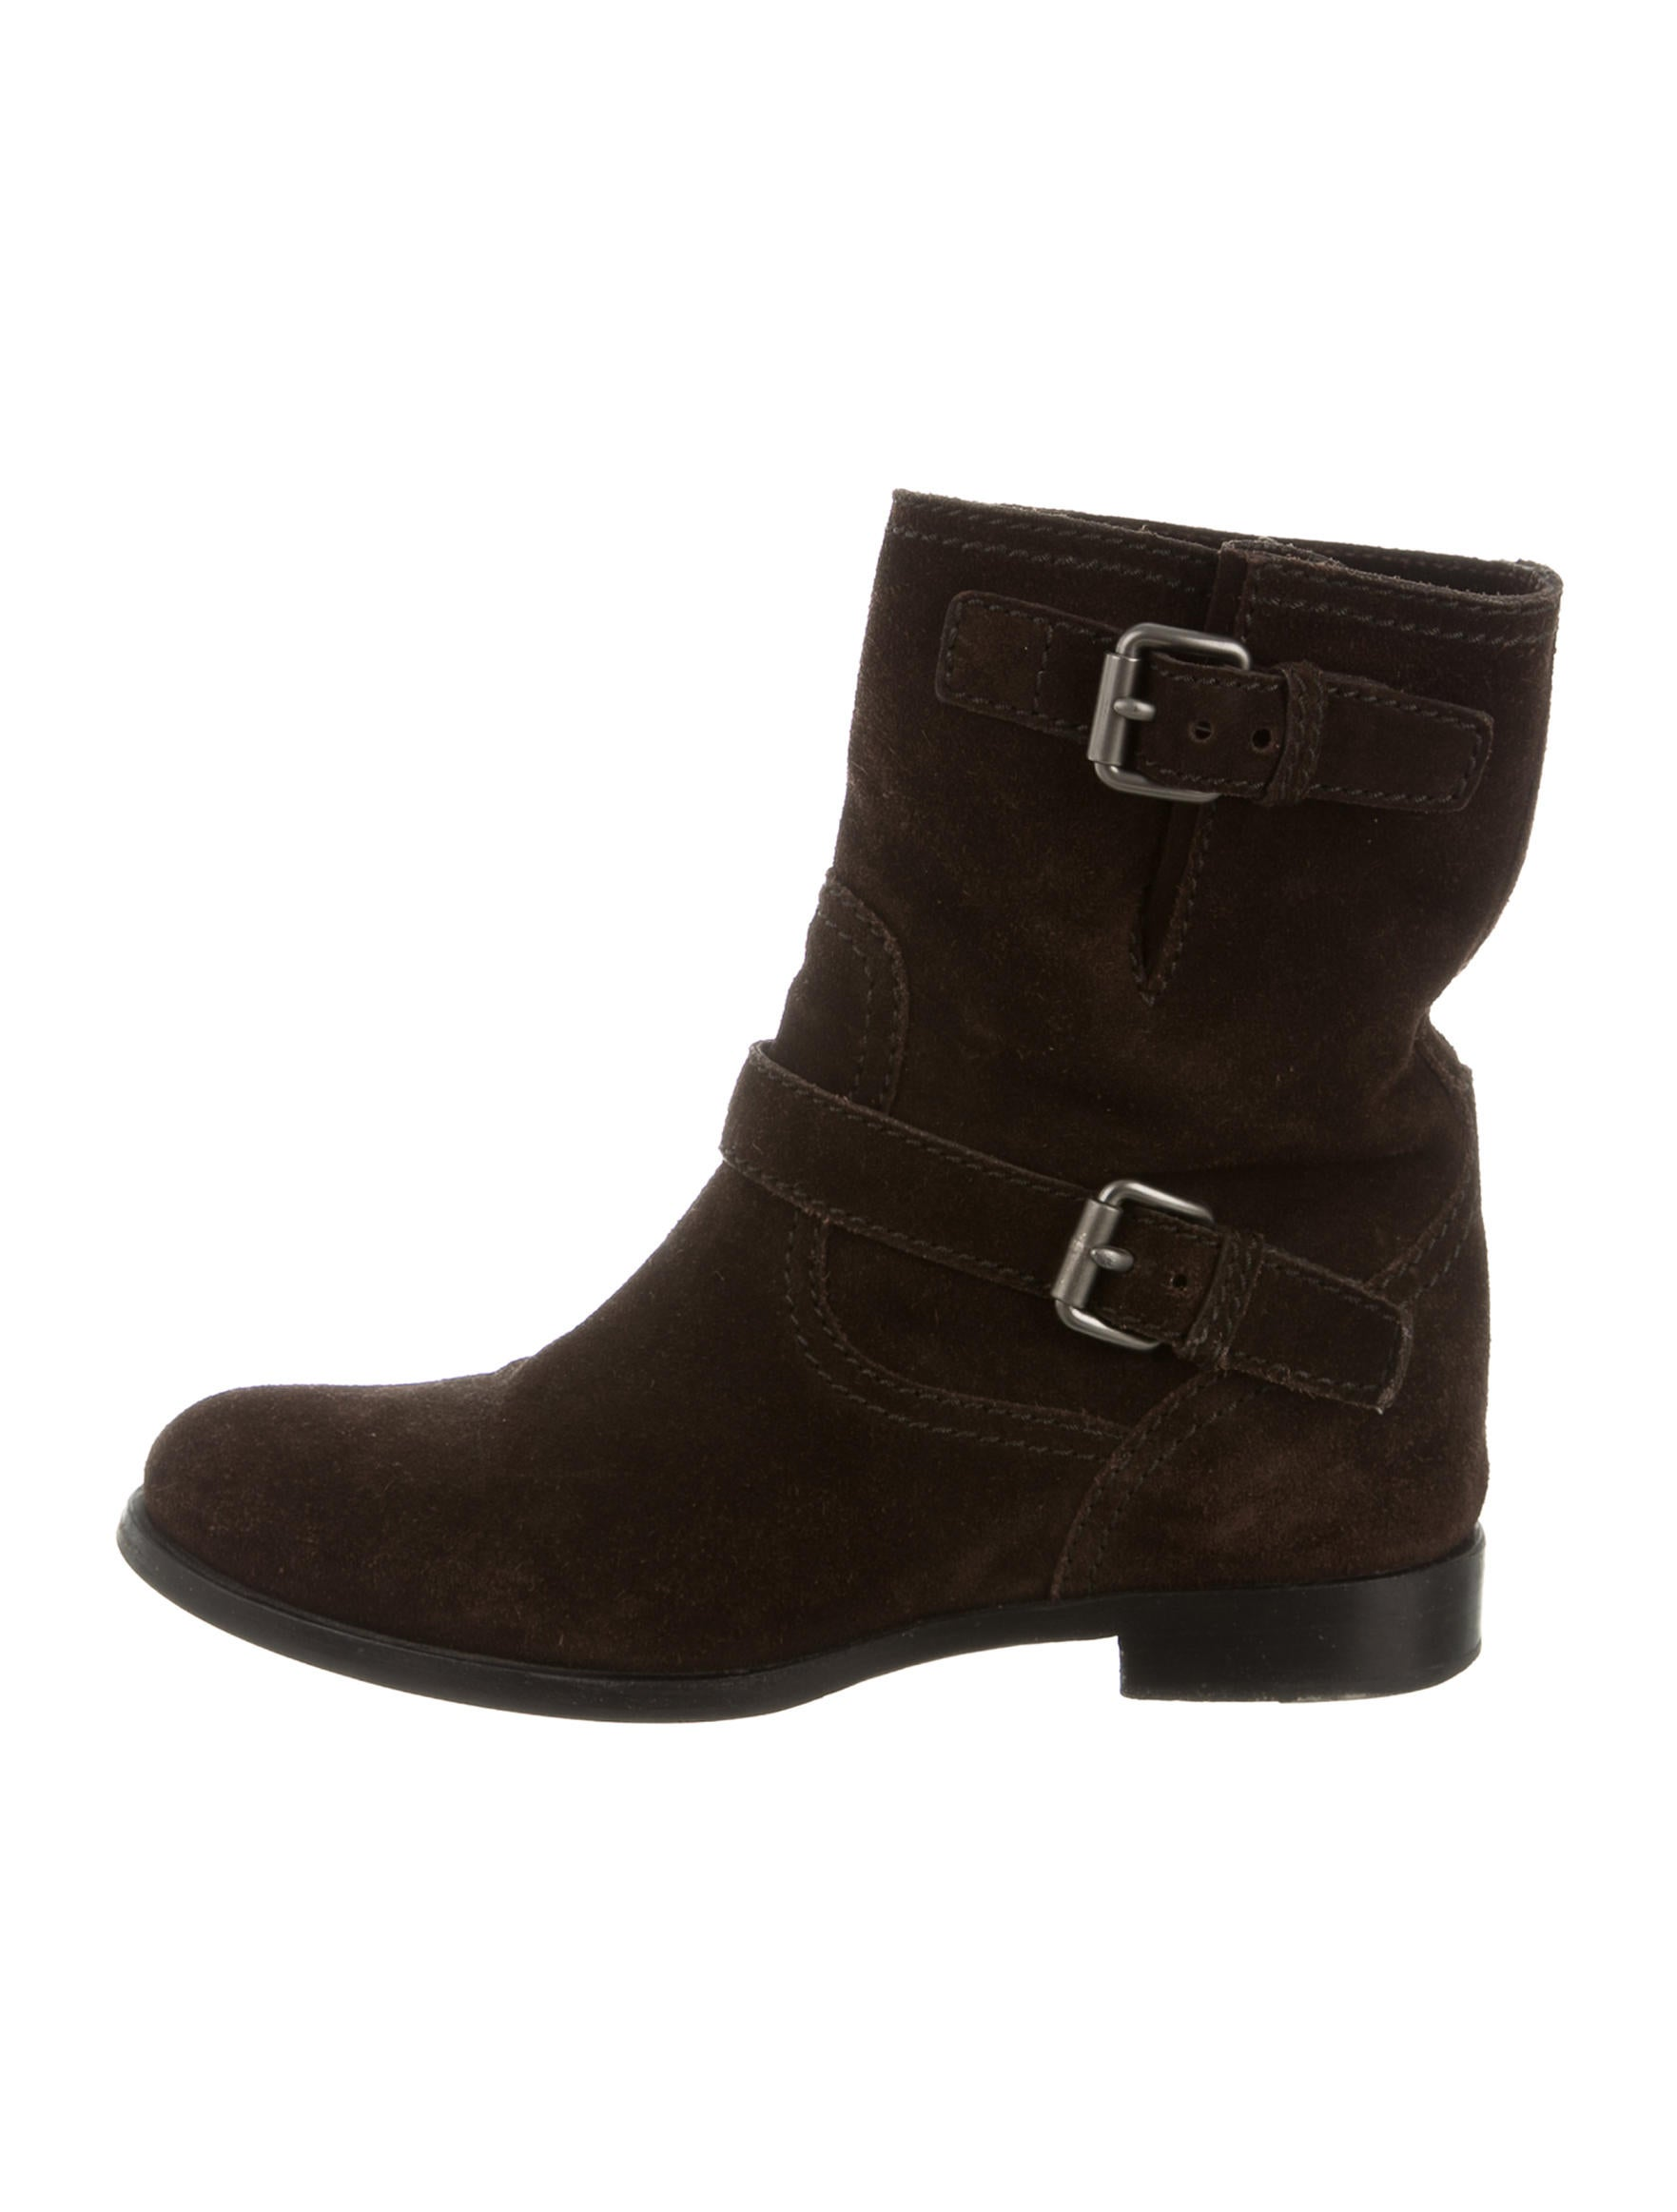 prada suede moto ankle boots shoes pra120542 the